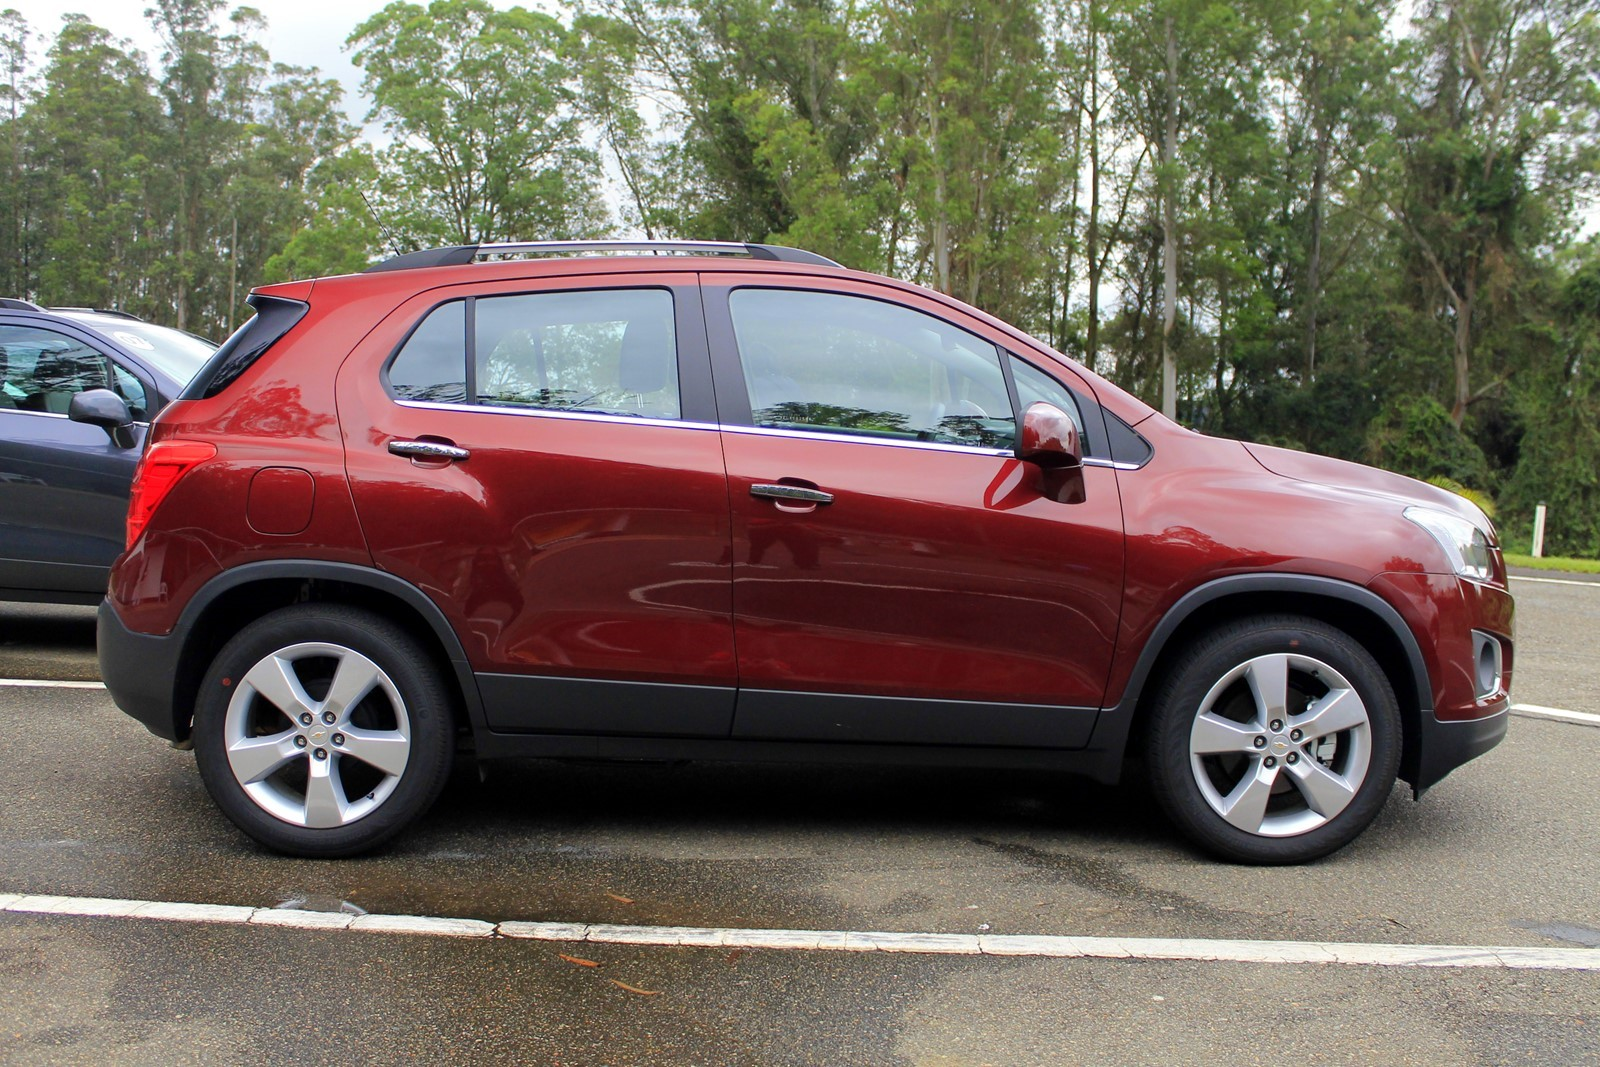 Chevrolet Tracker 1.4 2014 photo - 9